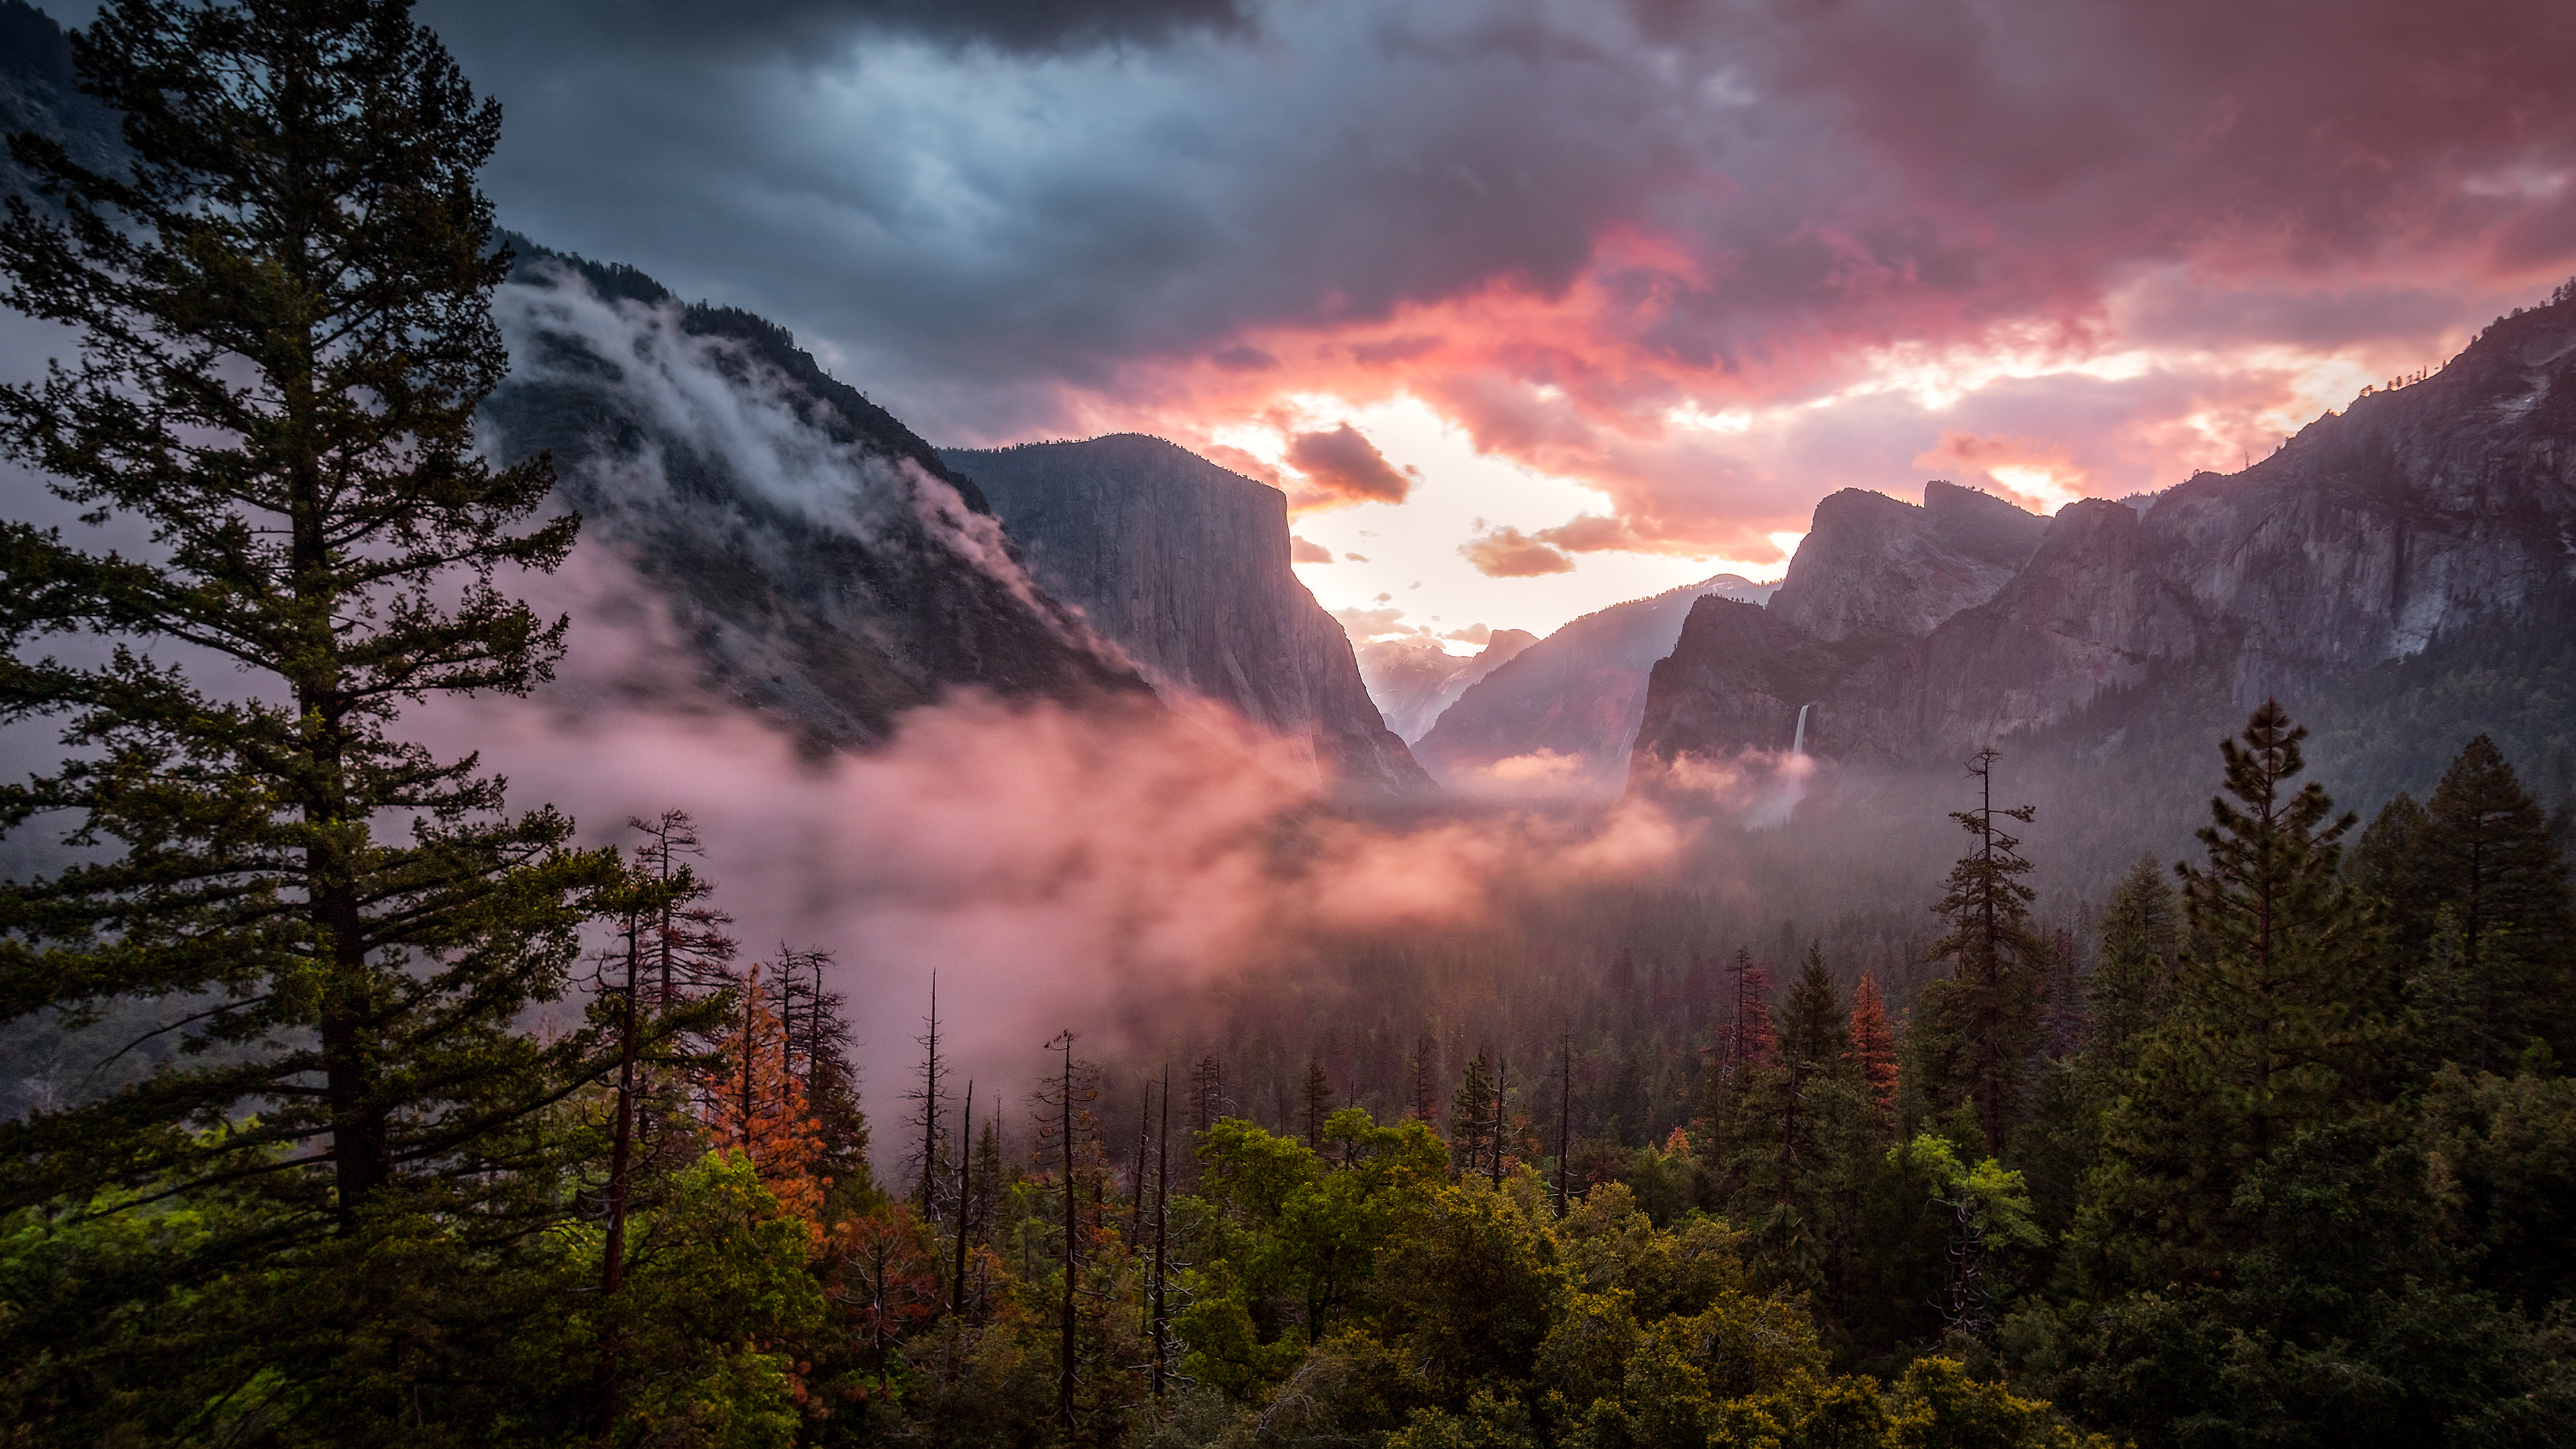 Misty yosemite hd nature 4k wallpapers images - Yosemite national park hd wallpaper ...